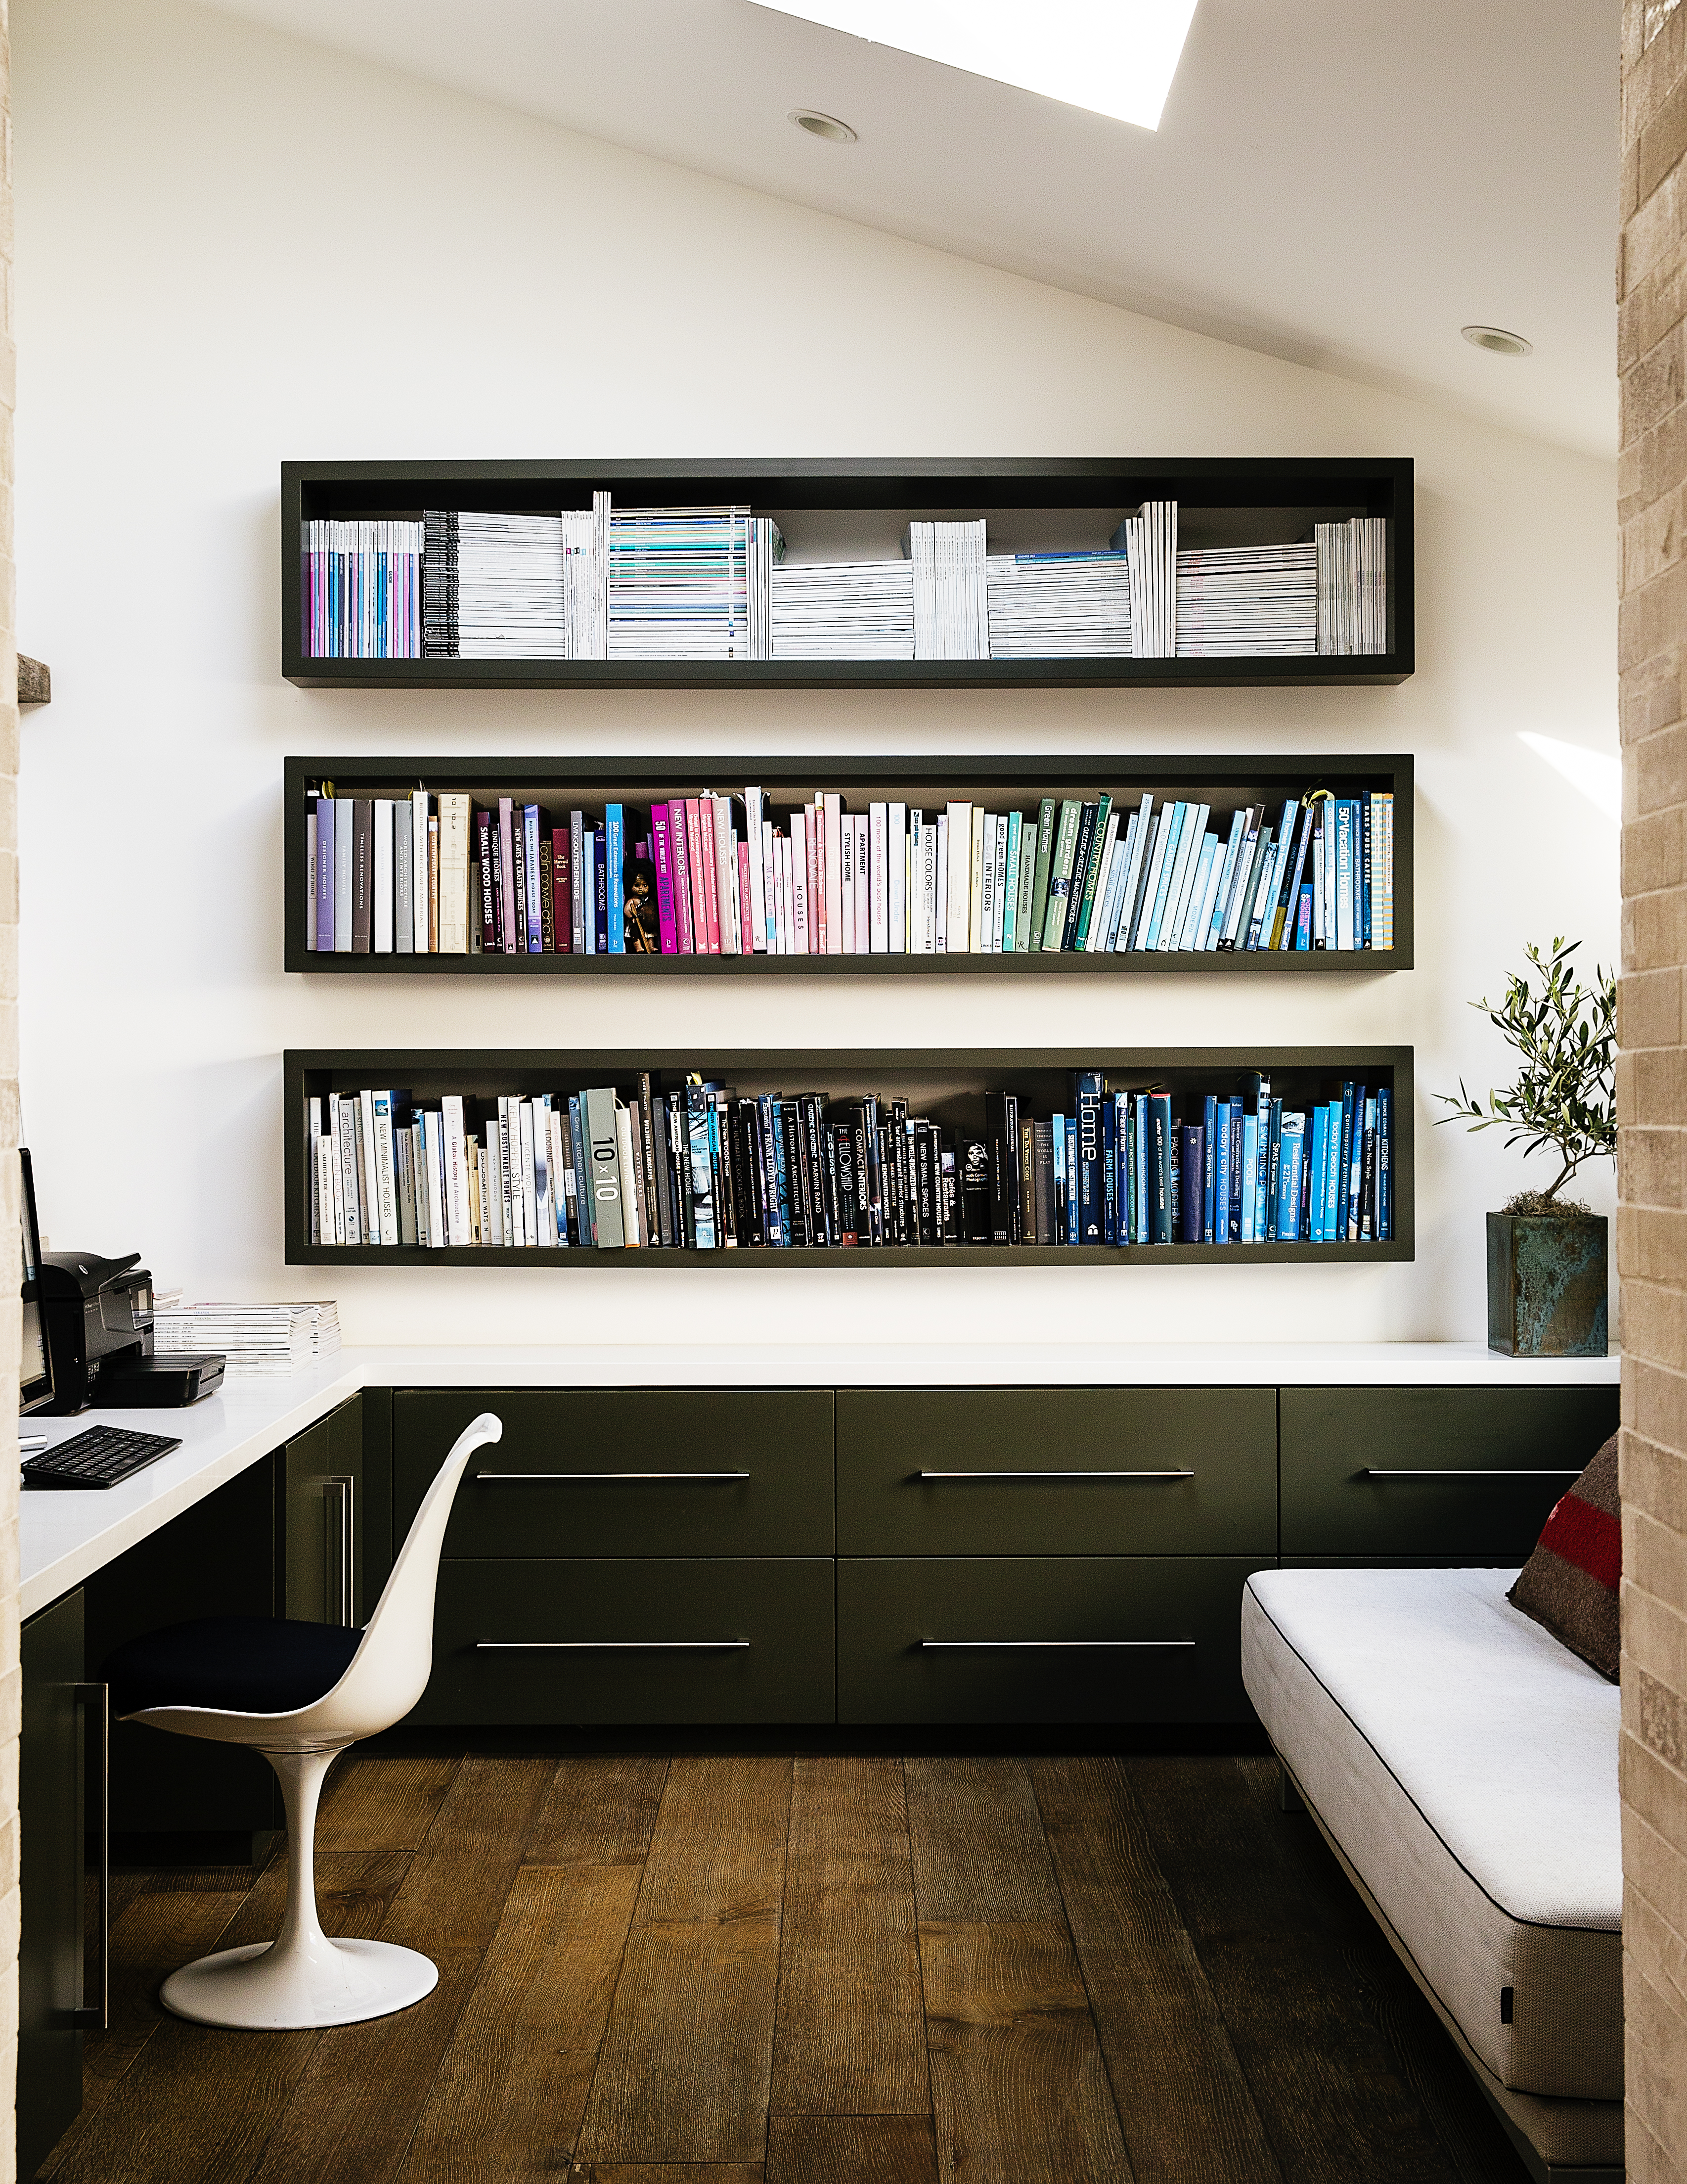 10 tips for clutter control